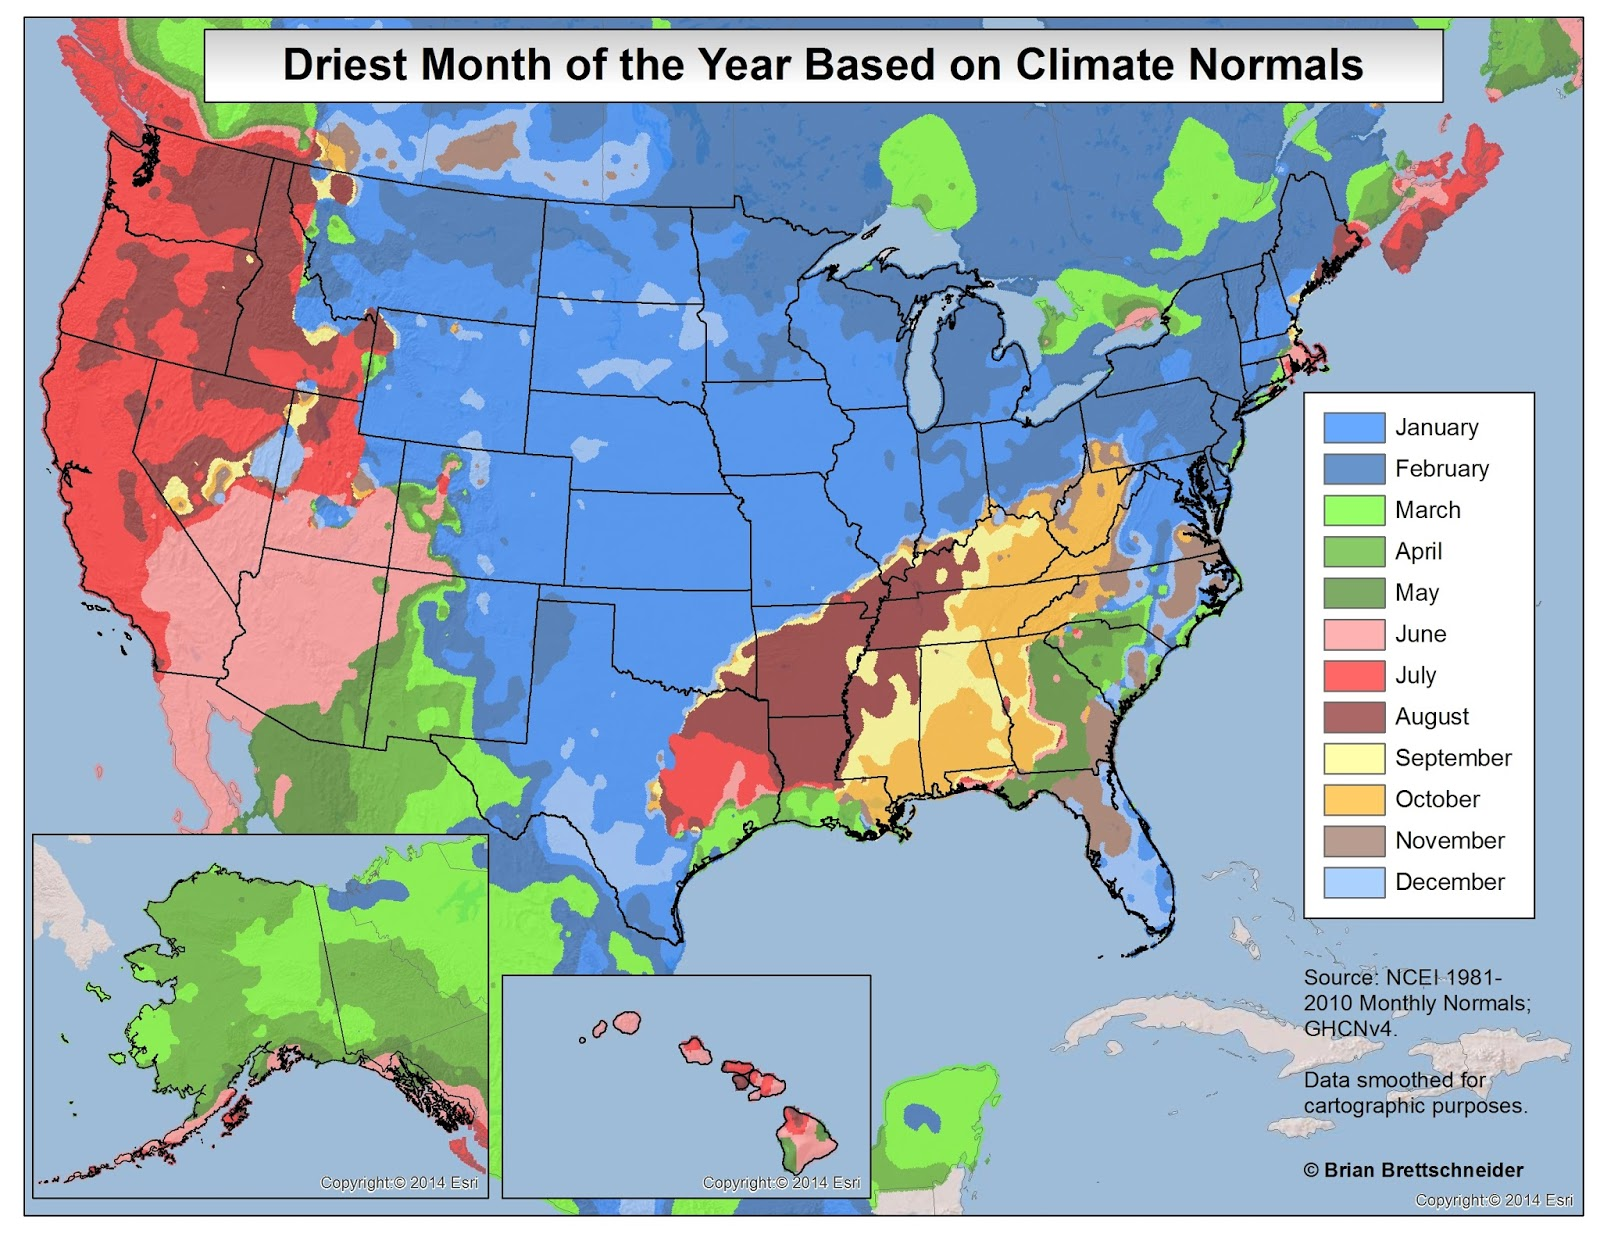 Driest month of the year based on climate normals